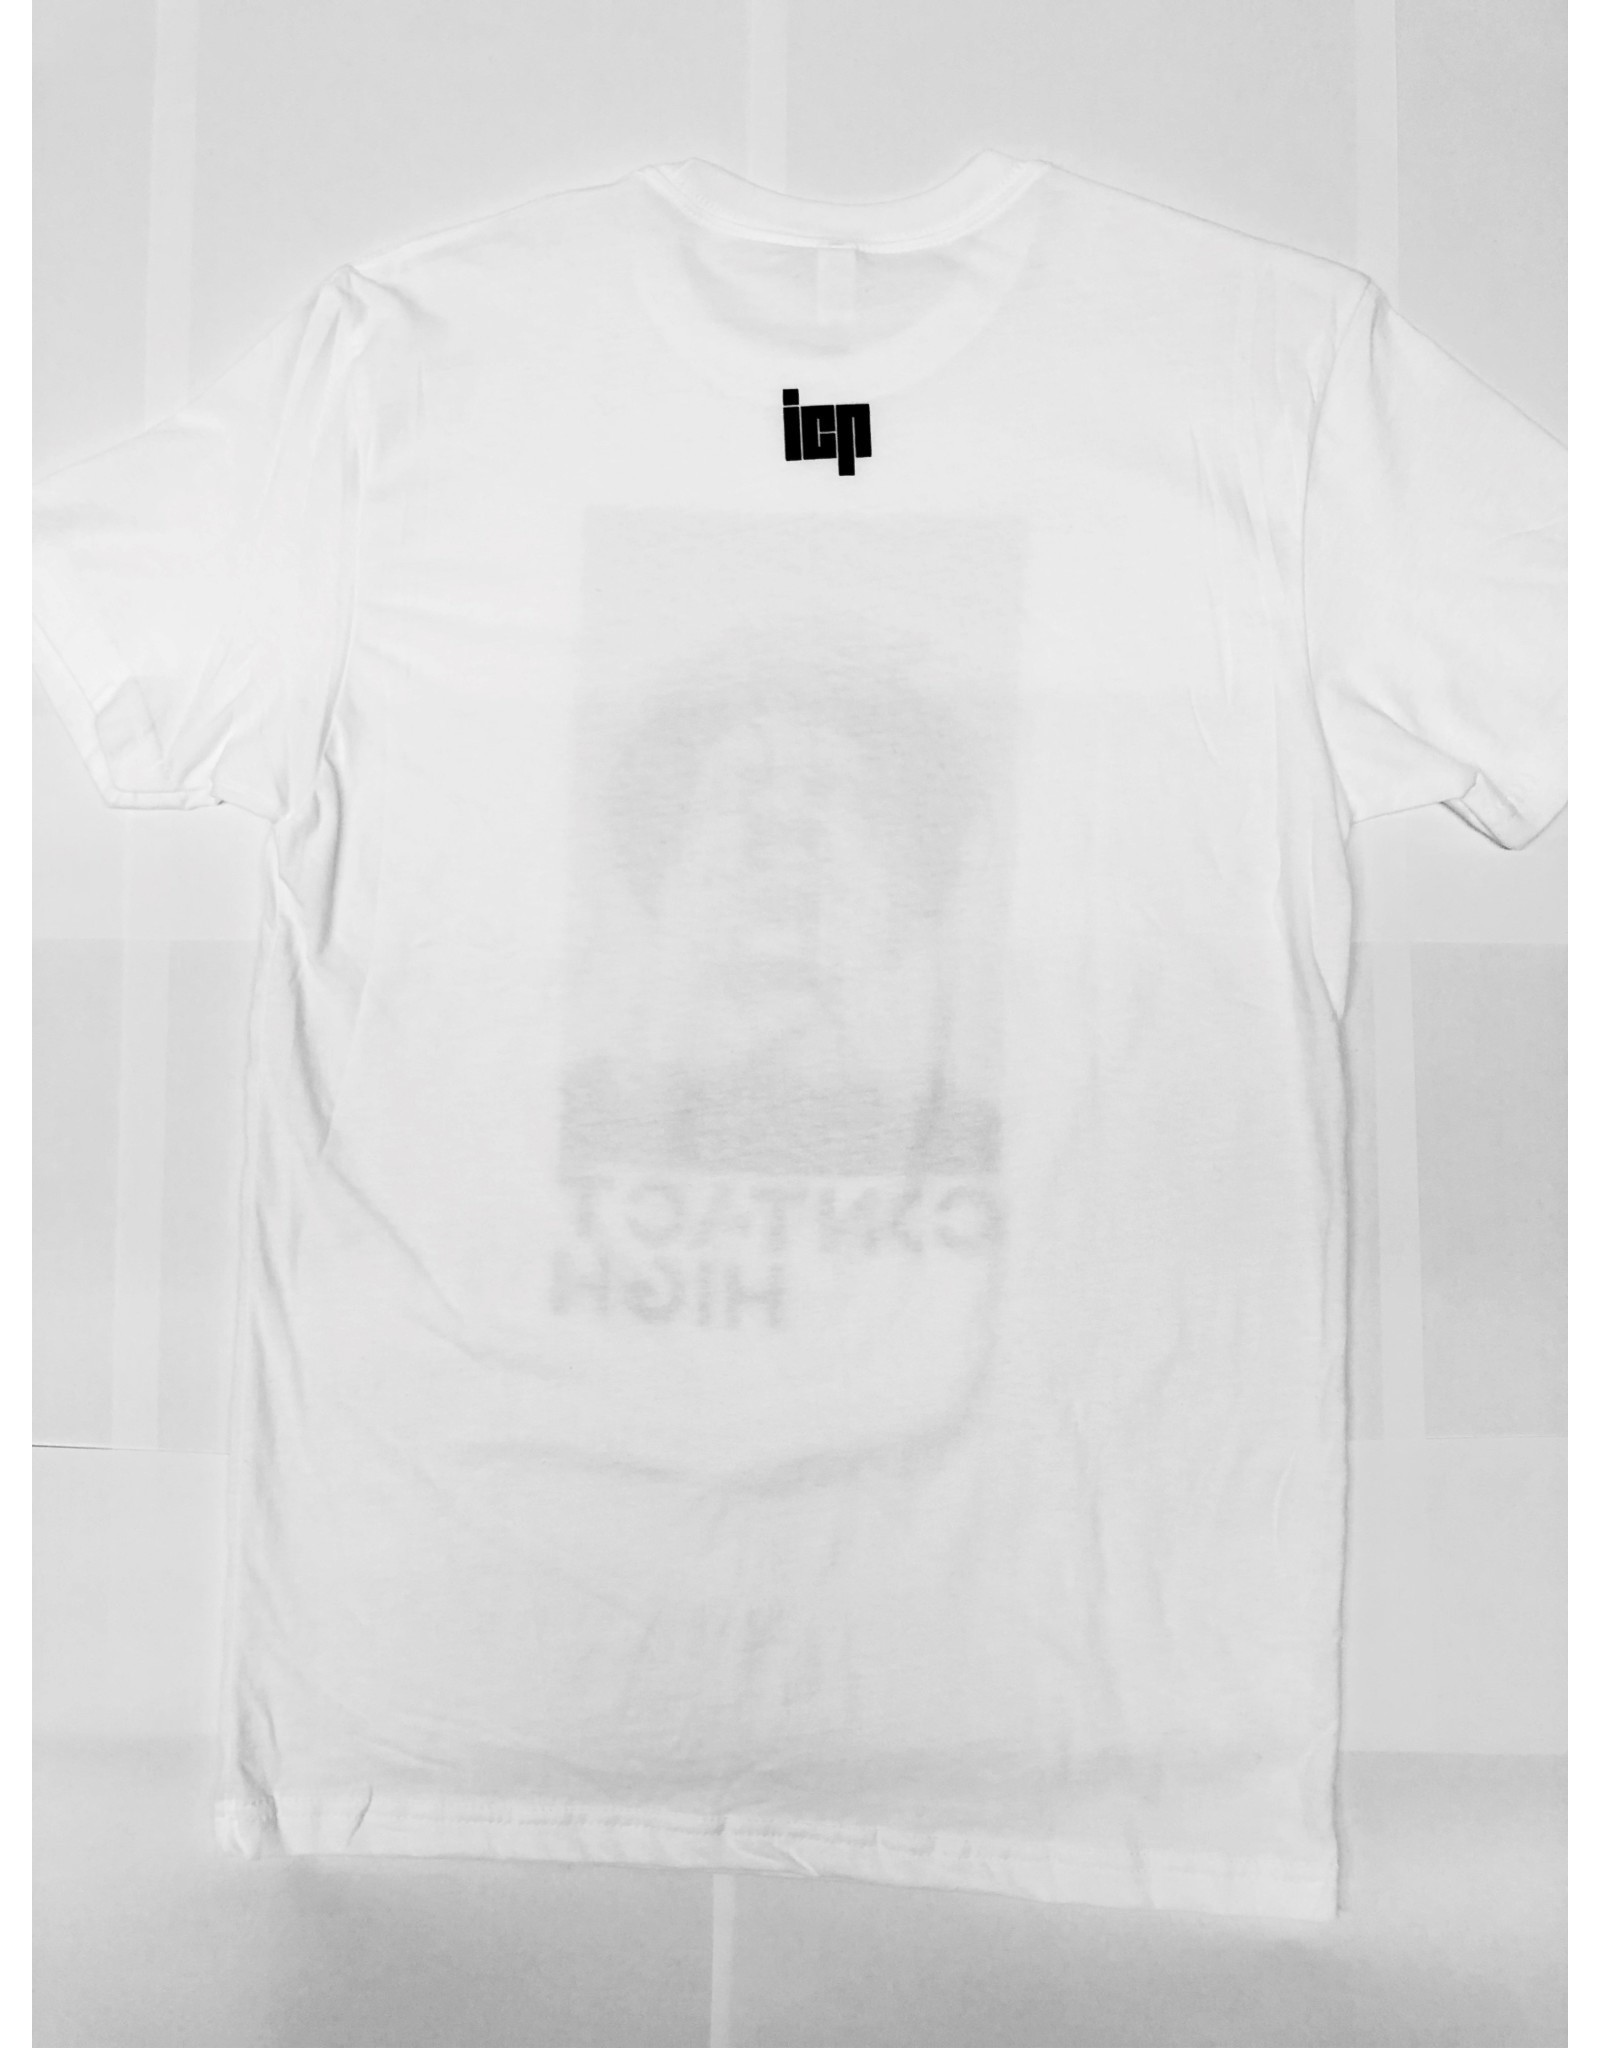 Questlove T-shirt